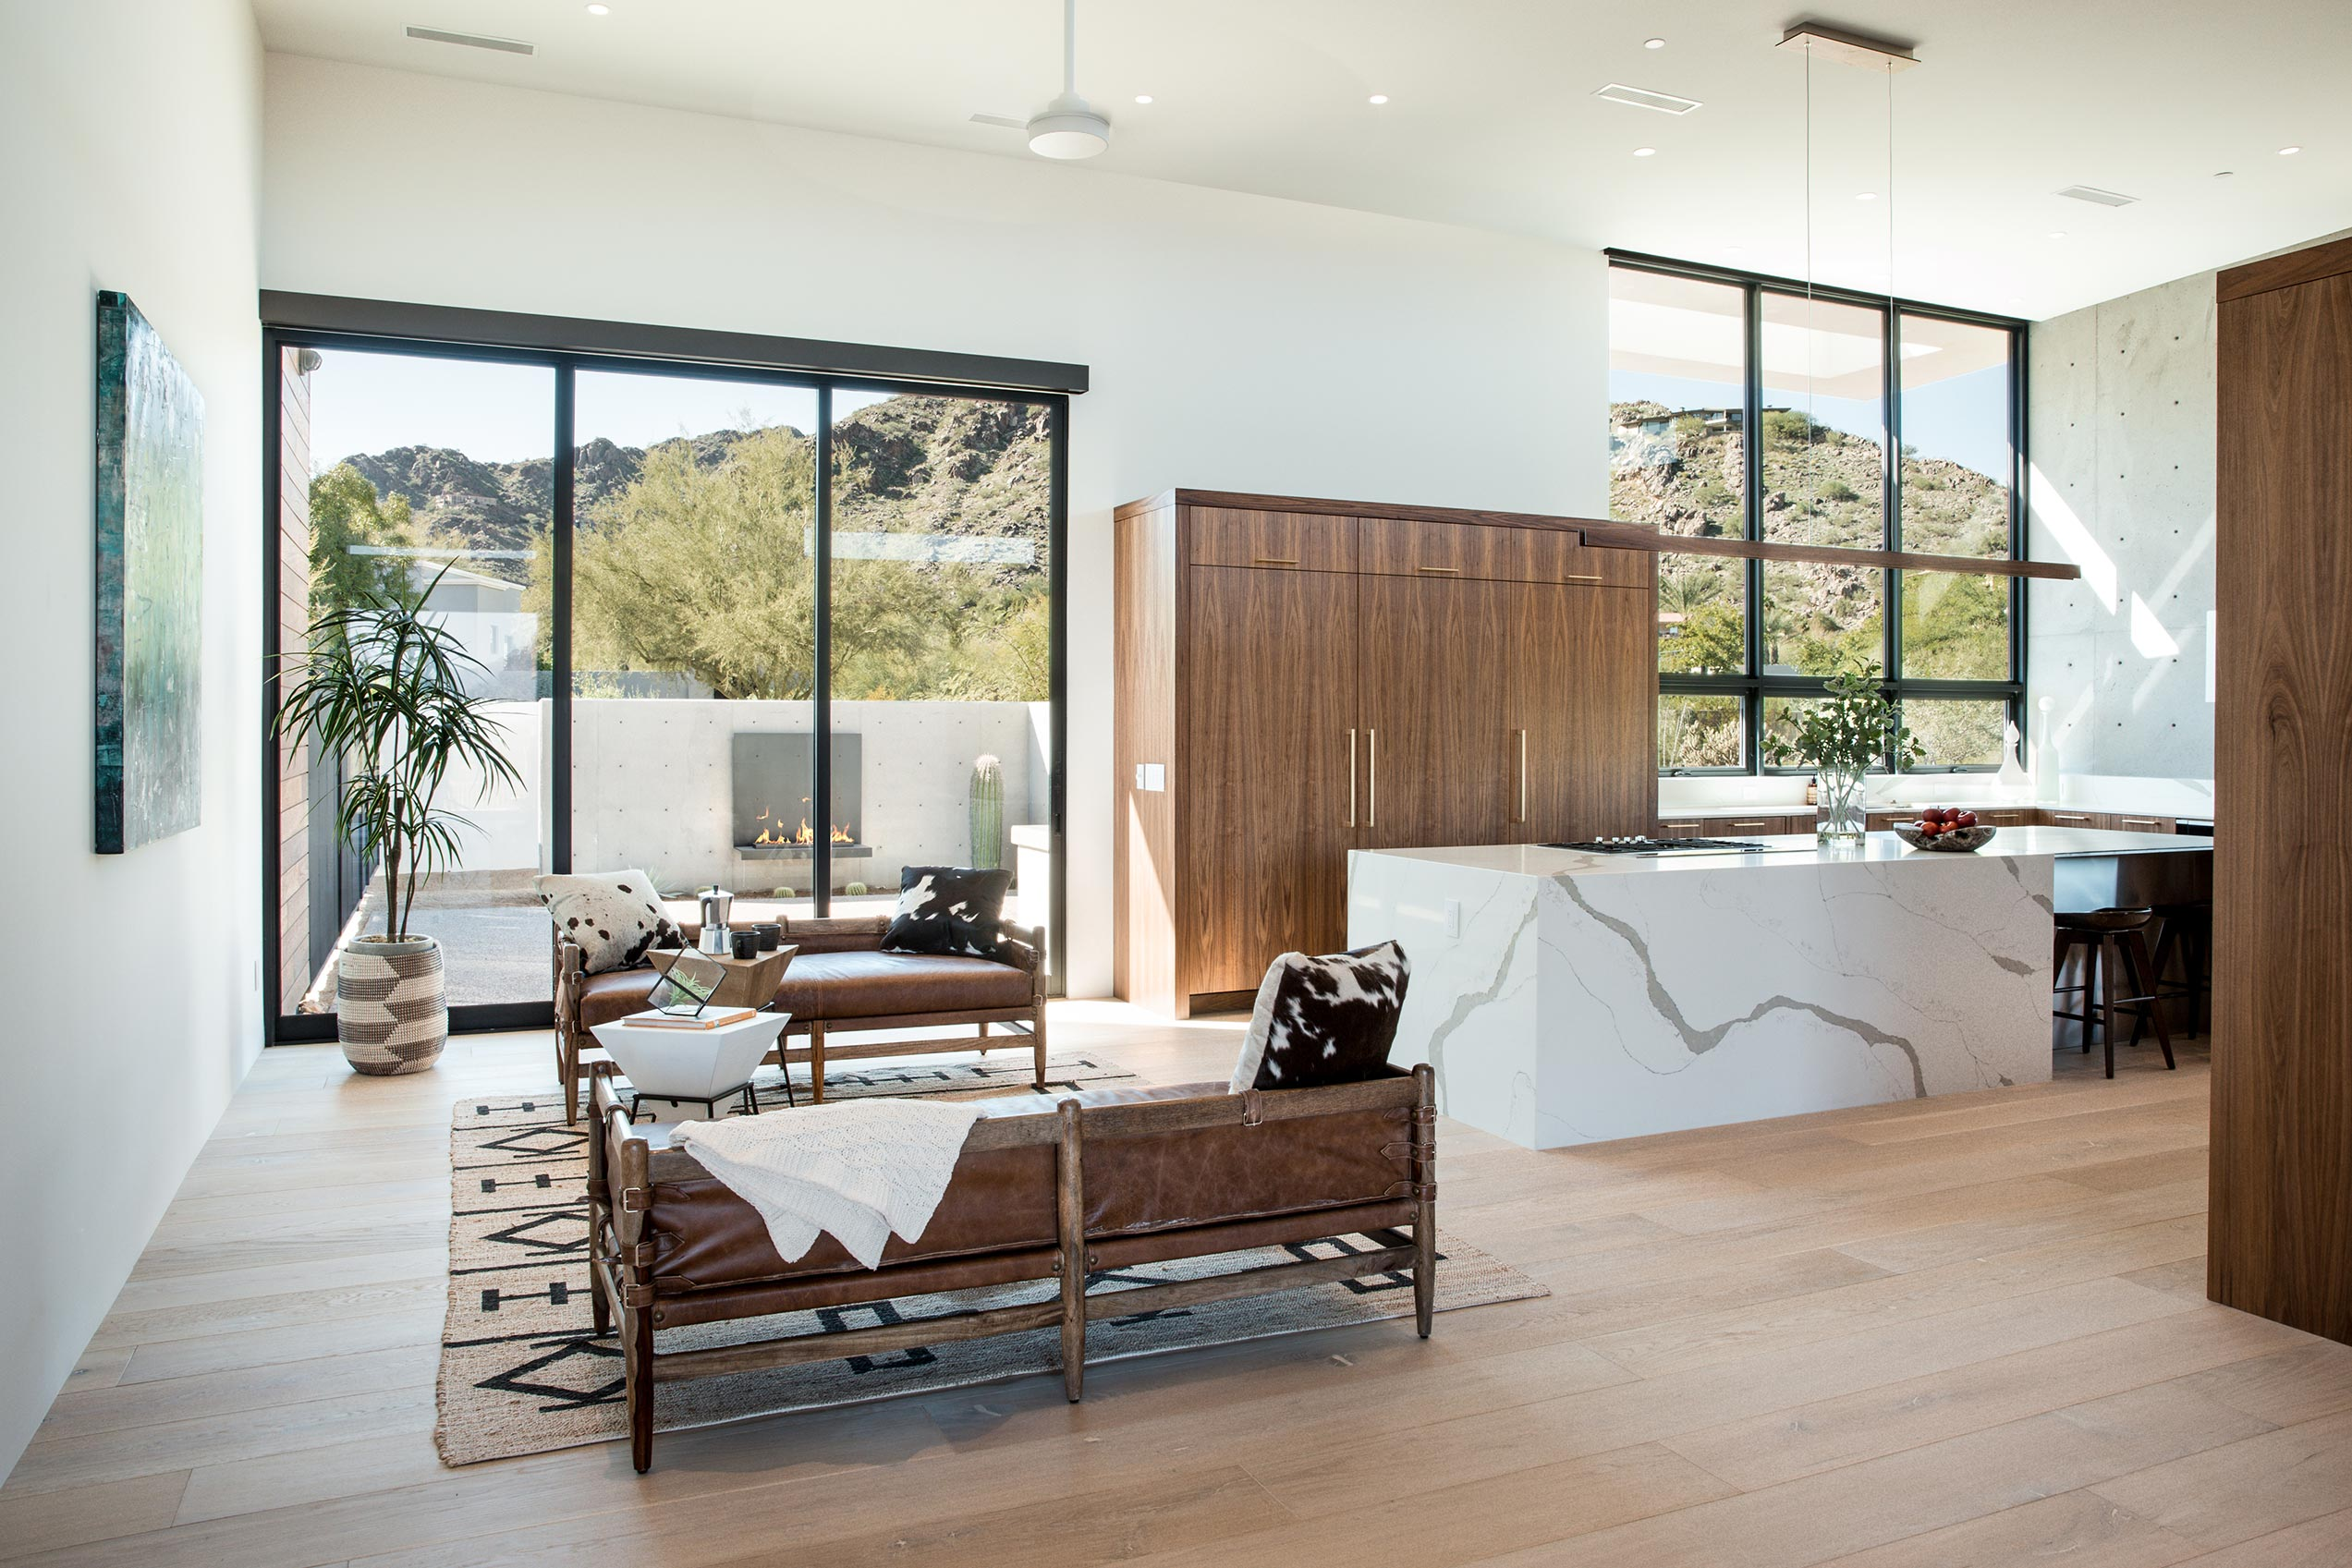 Moving glass walls and windows provide panoramic views of the Sonoran Desert.